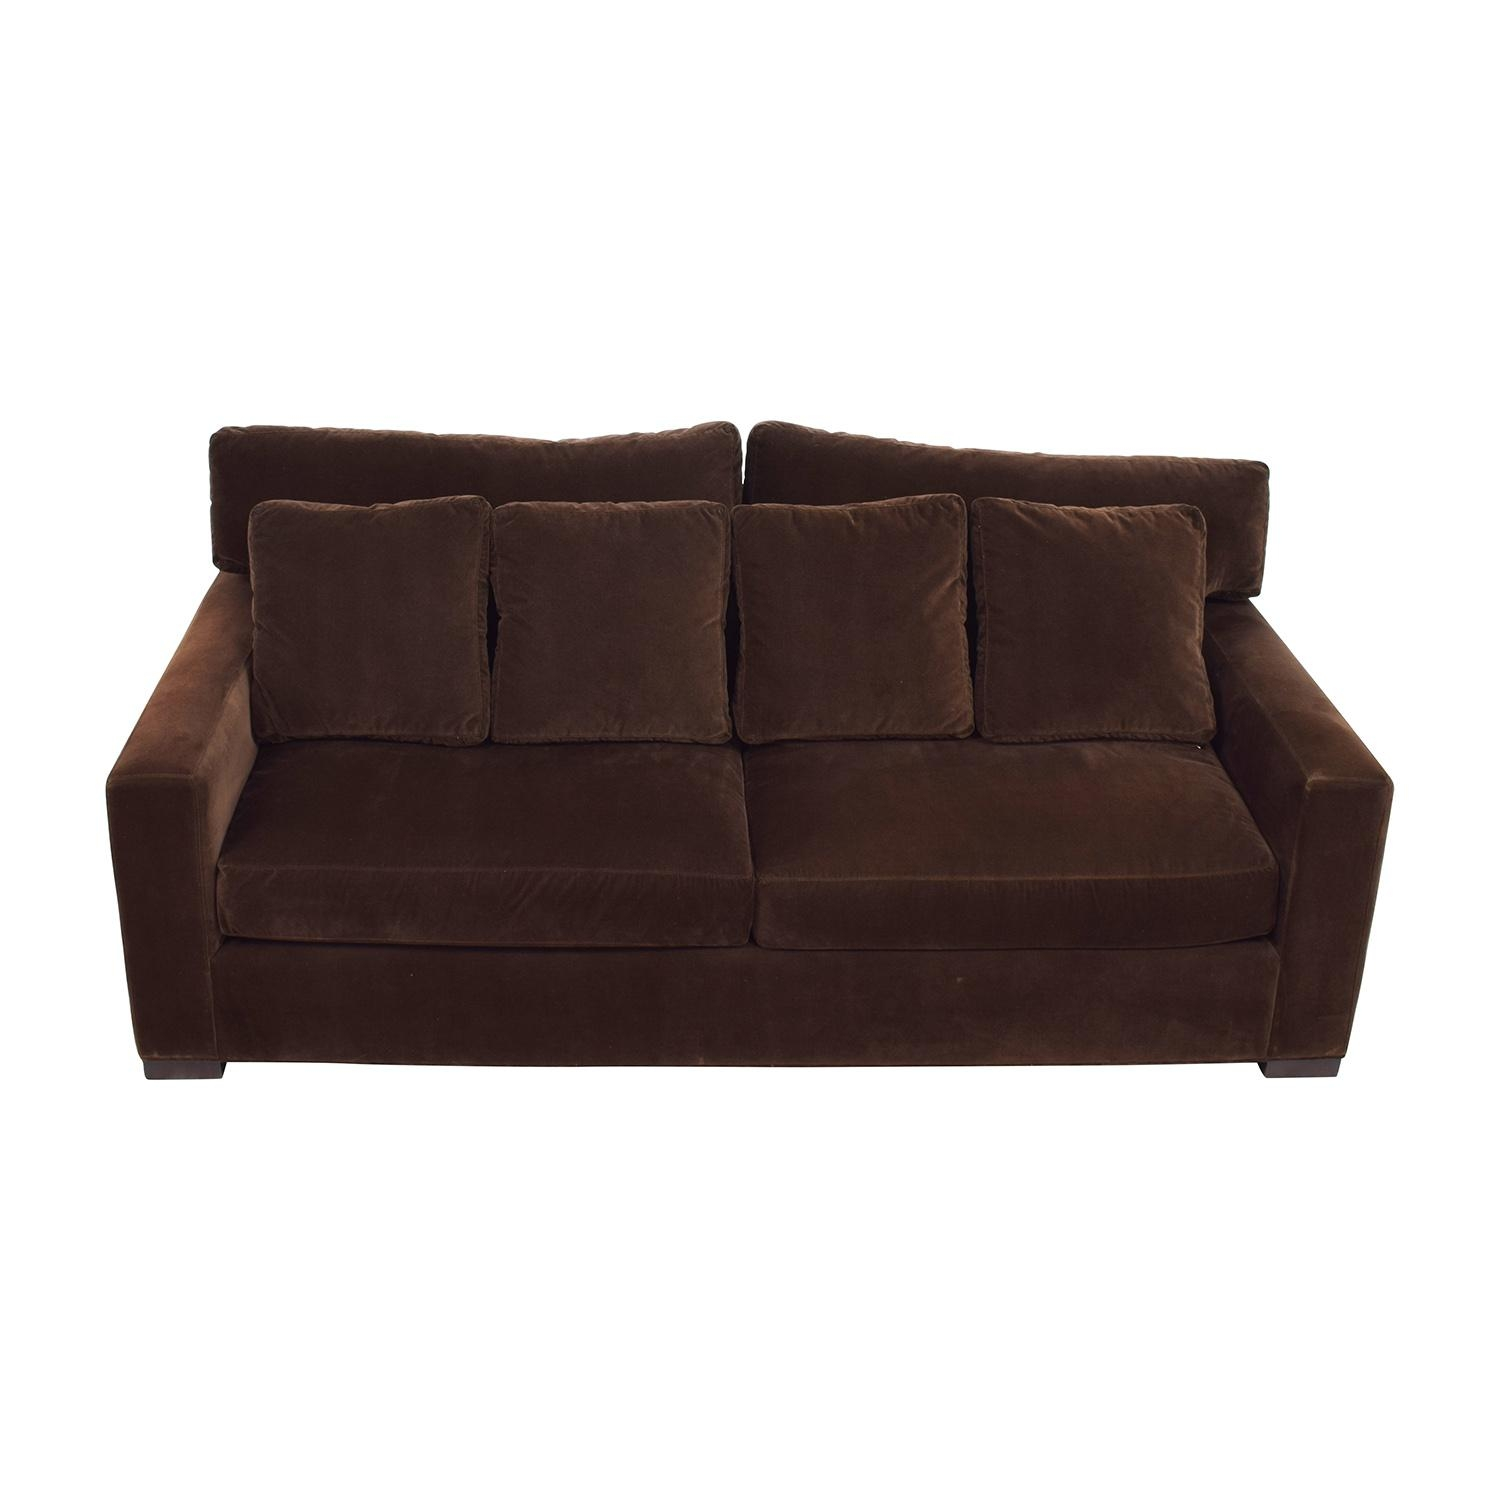 Used Sofas Nj Inside Brown Velvet Sofas (View 6 of 20)